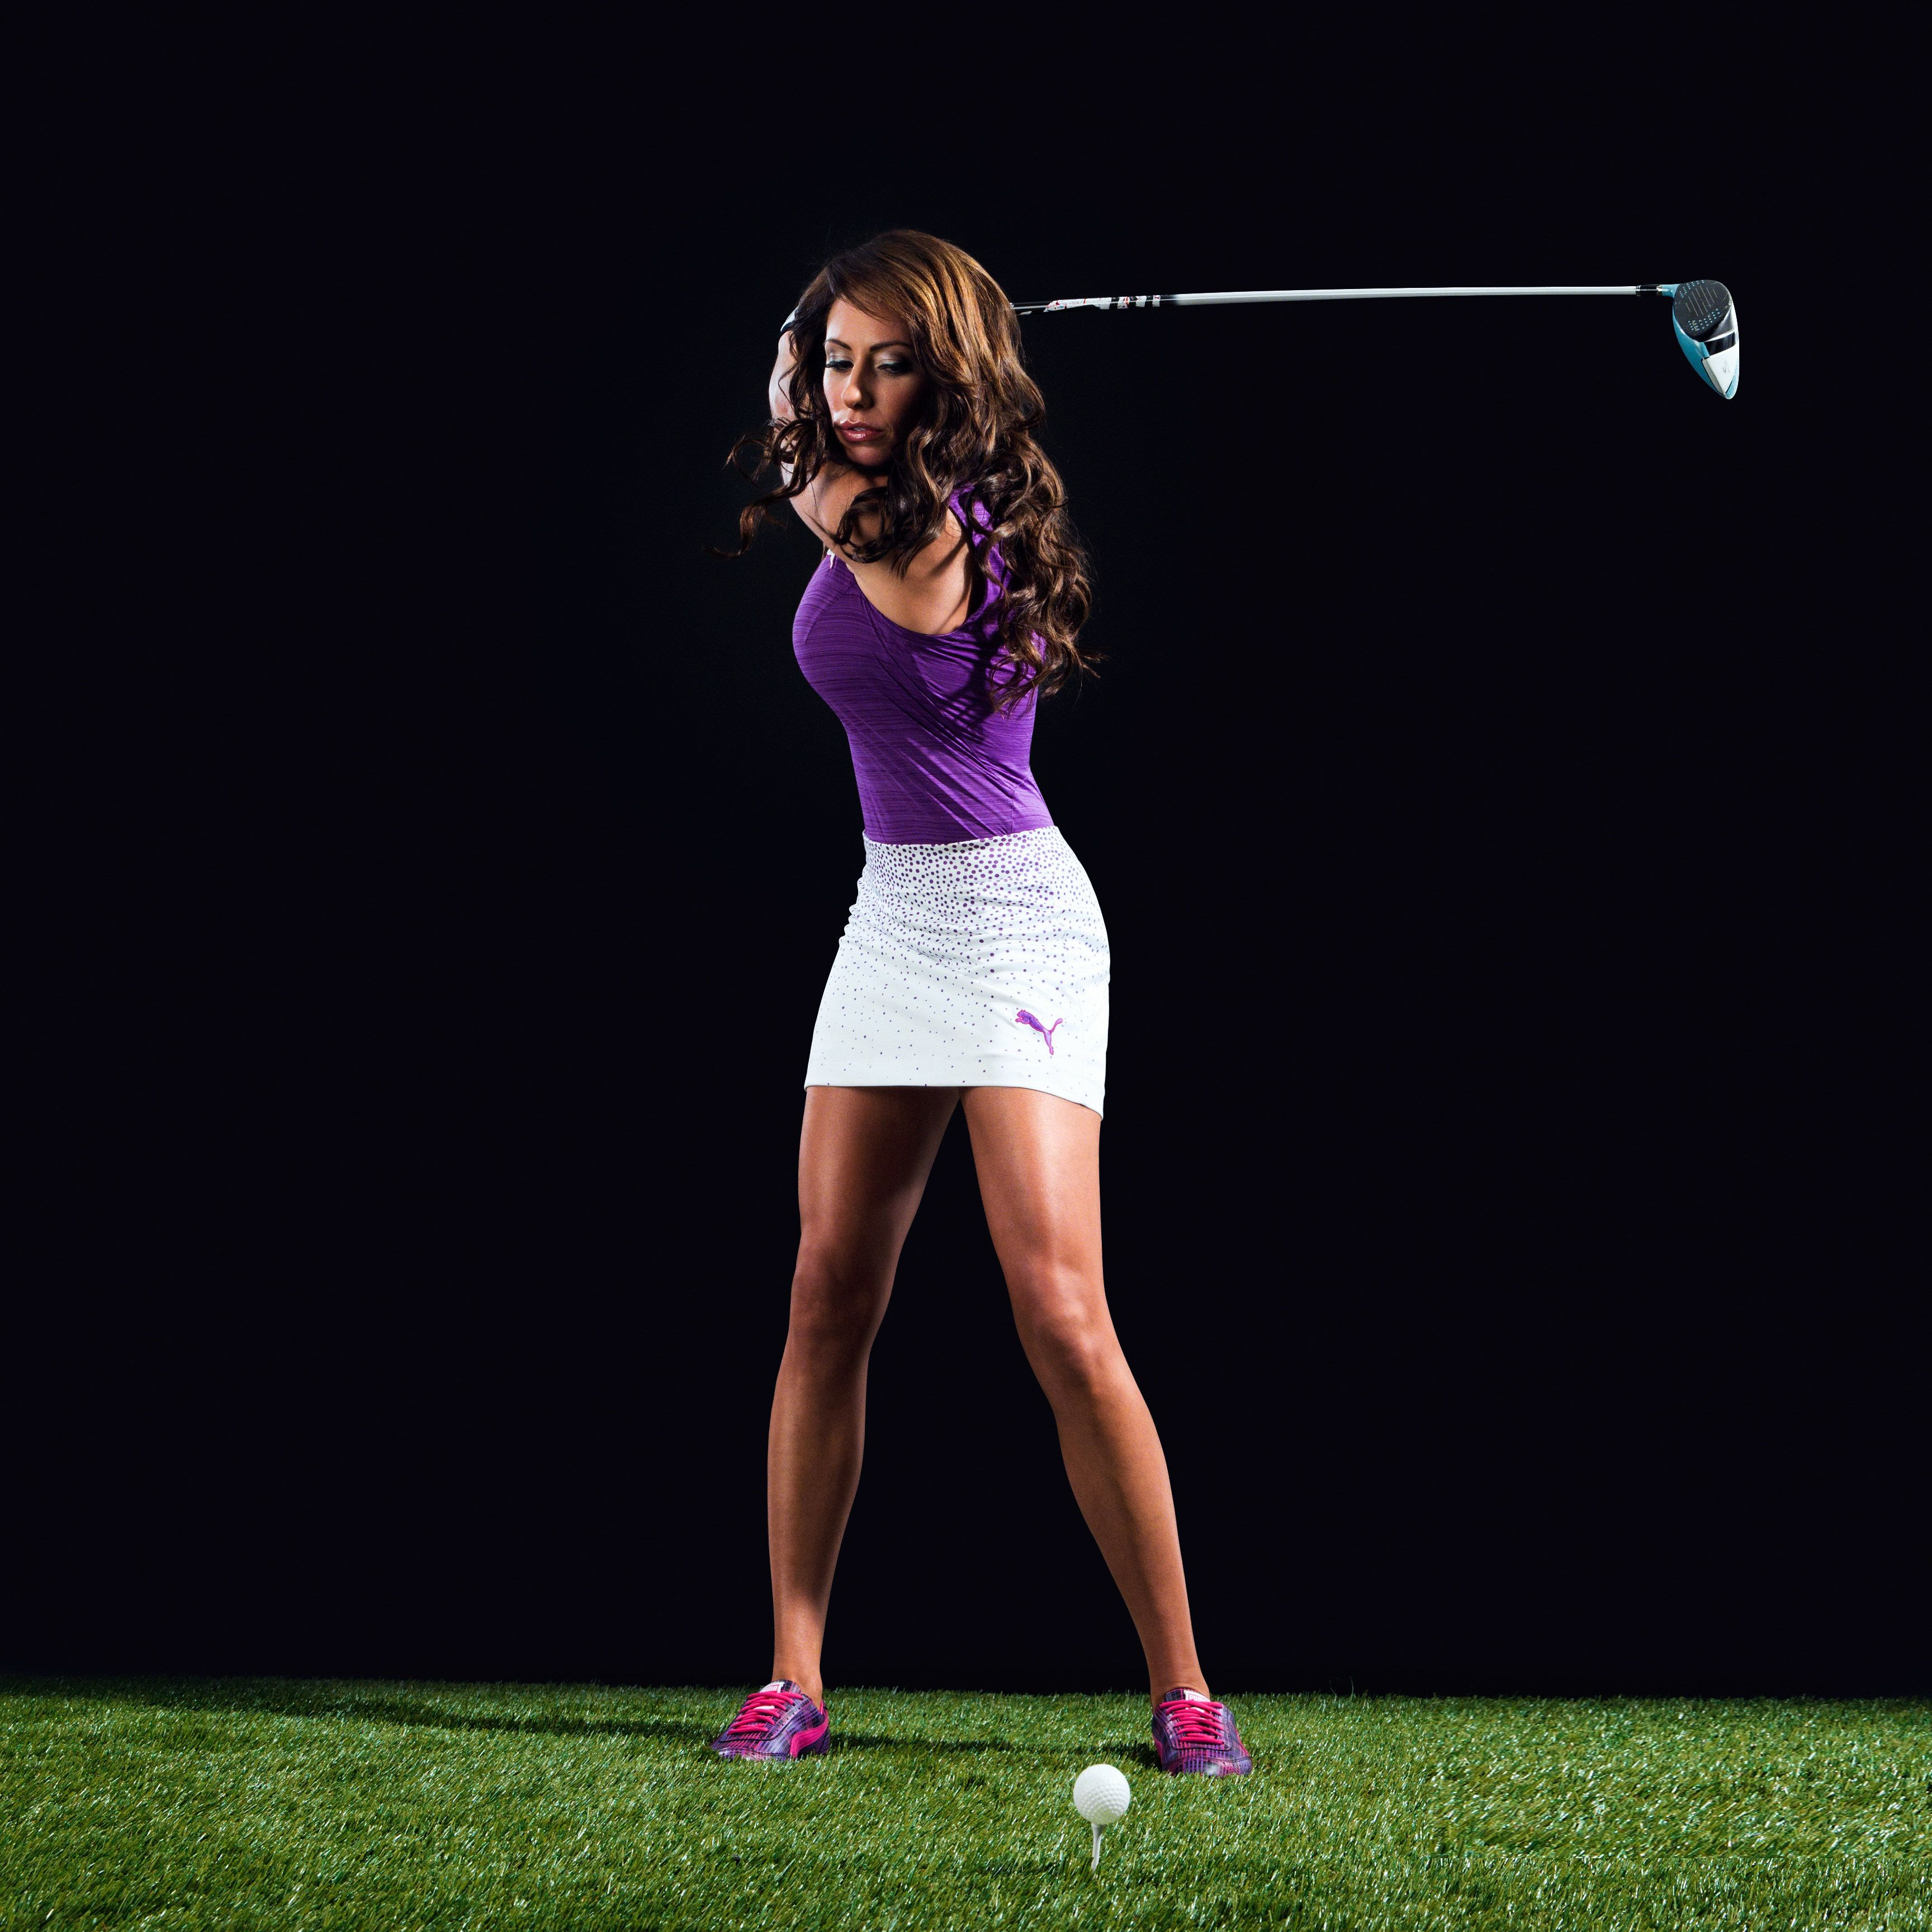 Holly Sonders Hot Pictures That Are Absolutely Must See: Swing Sequence: Holly Sonders